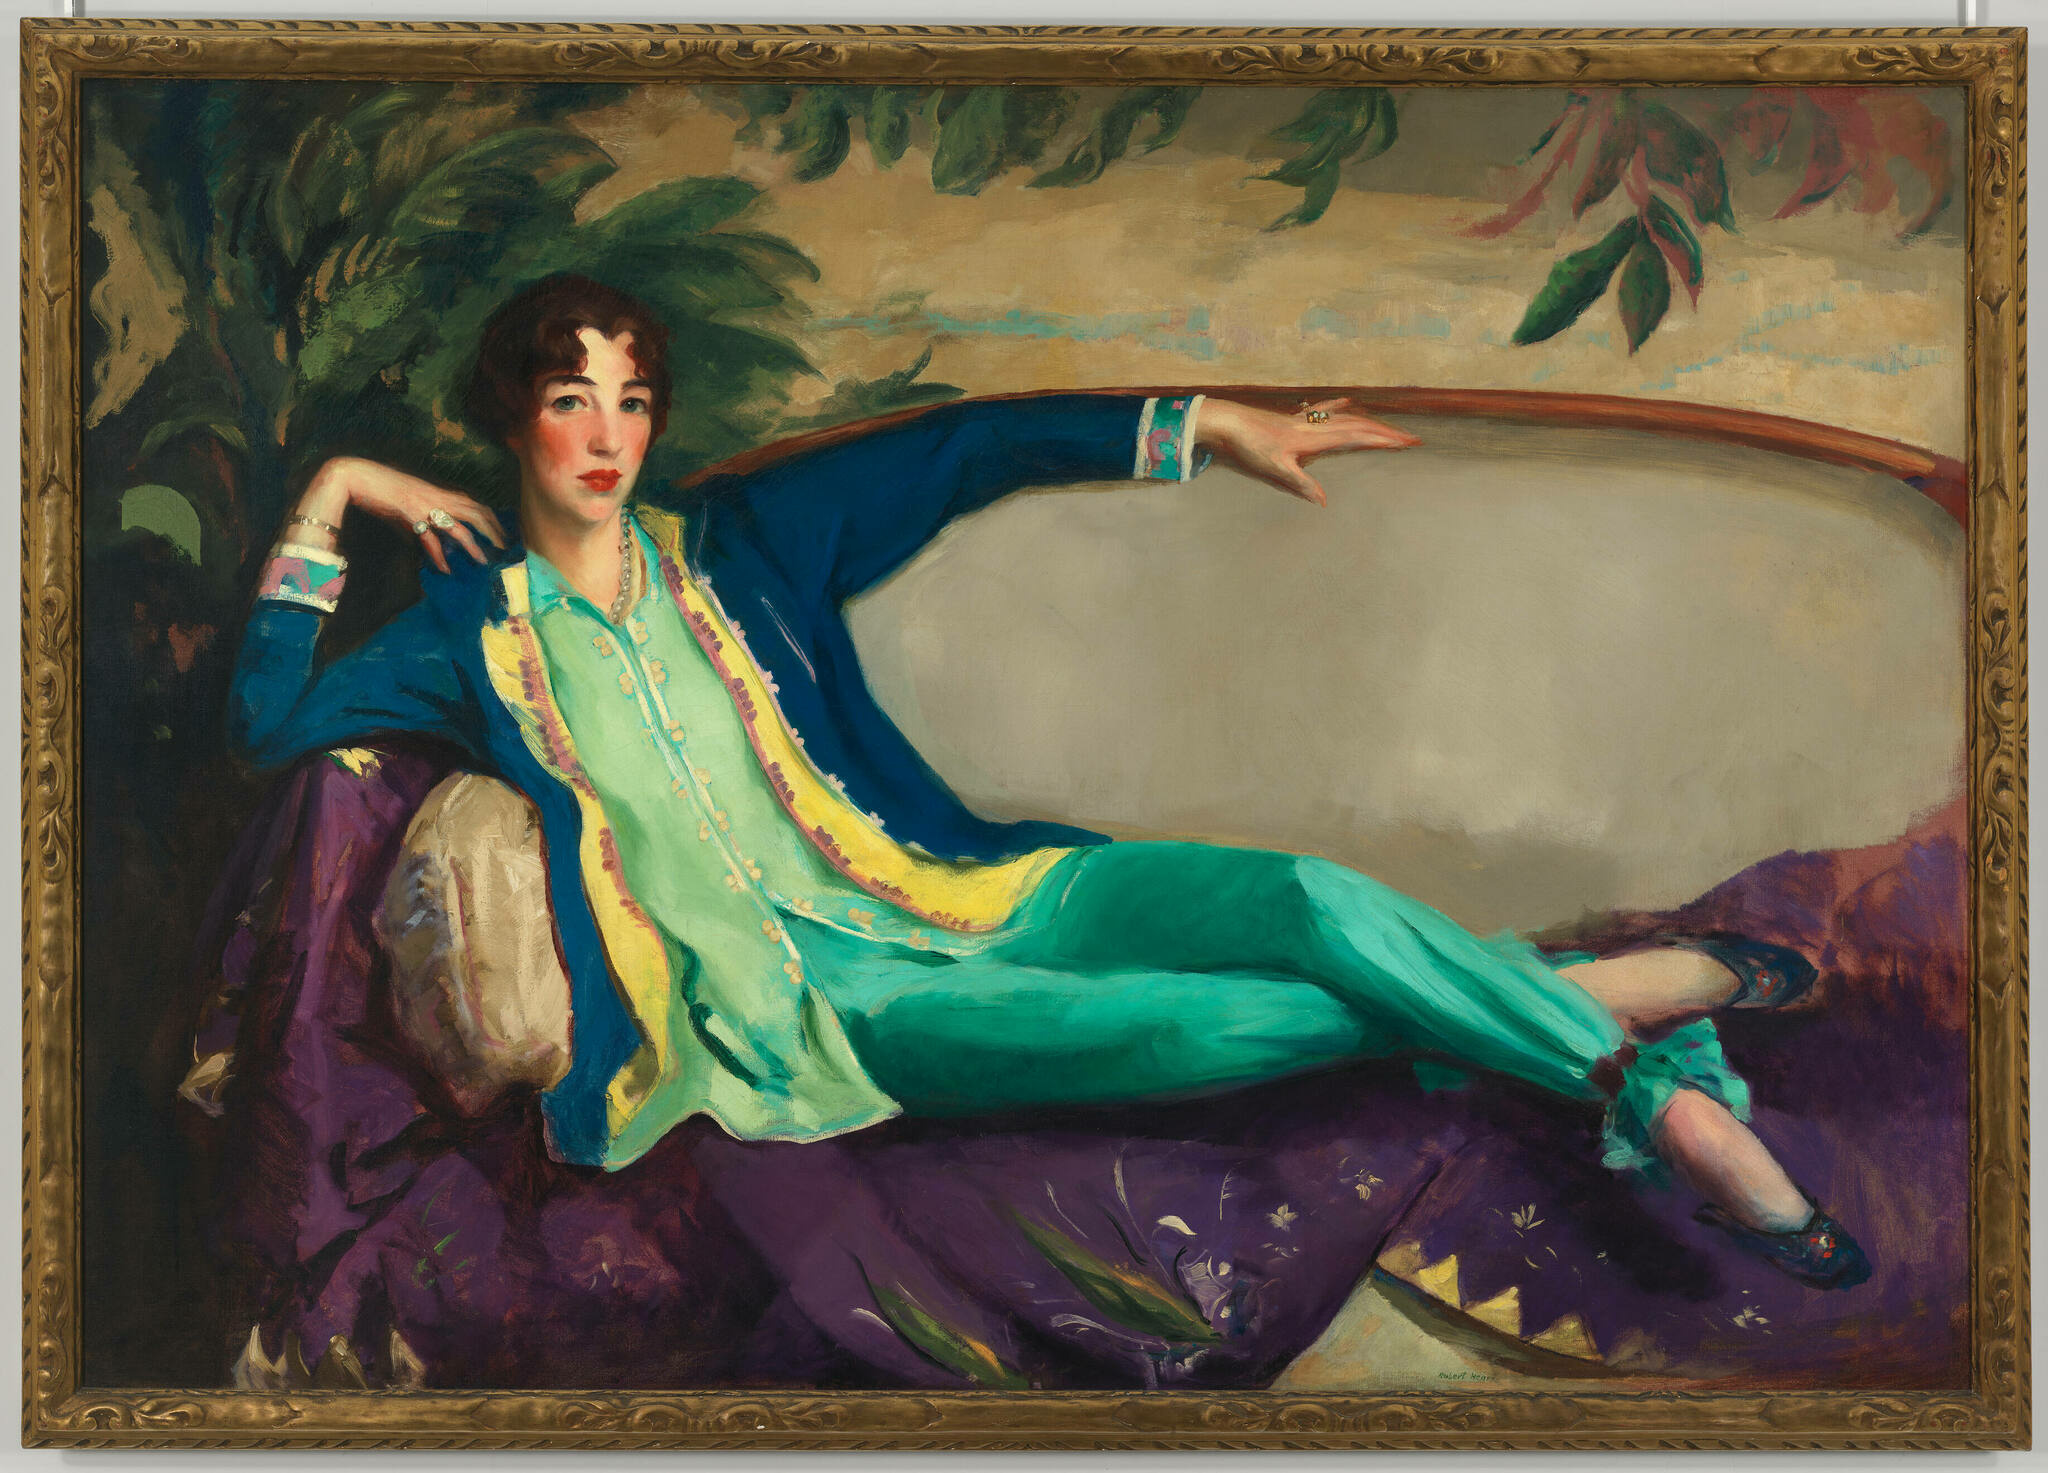 A white woman with short brown hair, rosy cheeks, and dressed in a flowy teal and blue shirt and pants lounges on a sofa while gazing intently.